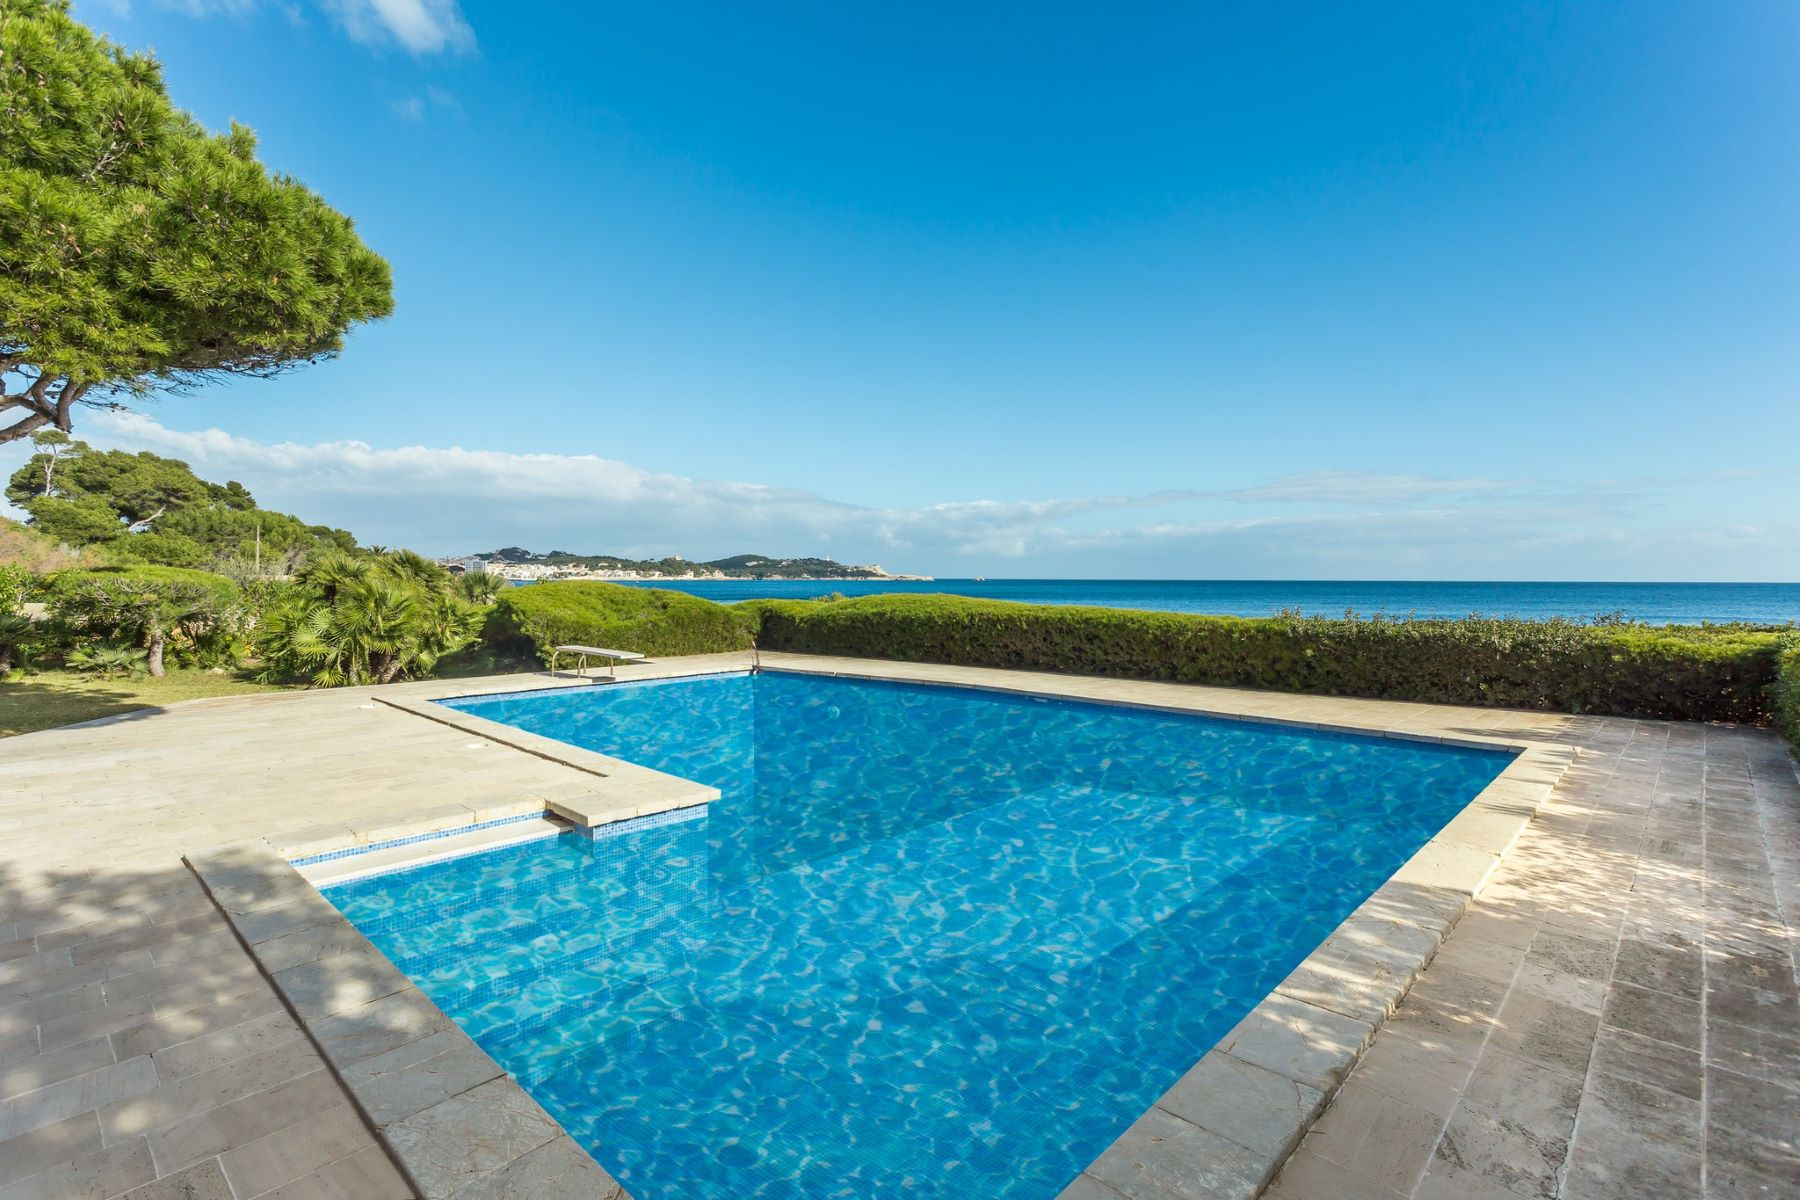 Single Family Home for Sale at Elegant first line villa with access to the sea Capdepera, Mallorca, Spain